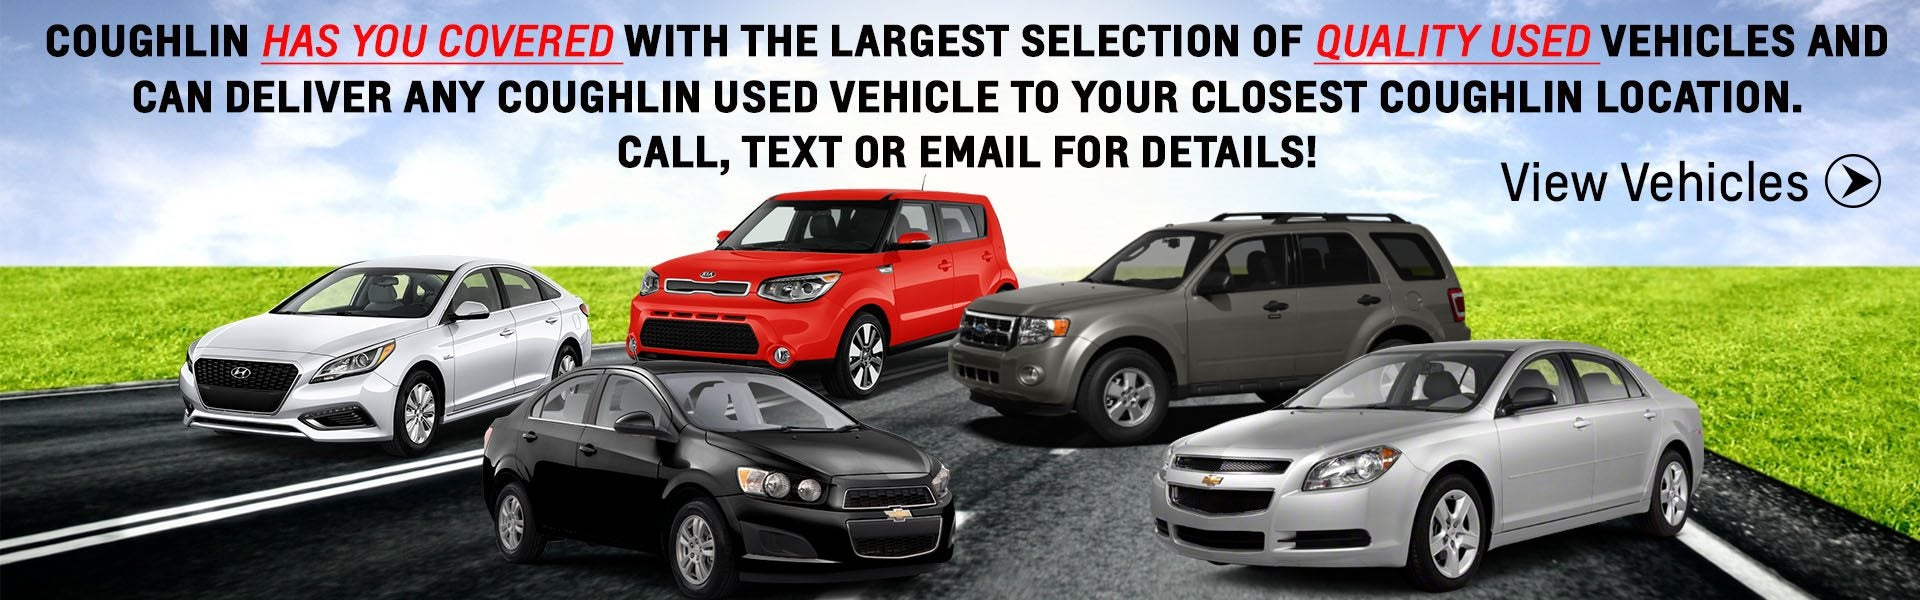 Kia Dealership Columbus Ohio >> Newark Kia Dealer in Newark OH | Columbus Groveport ...